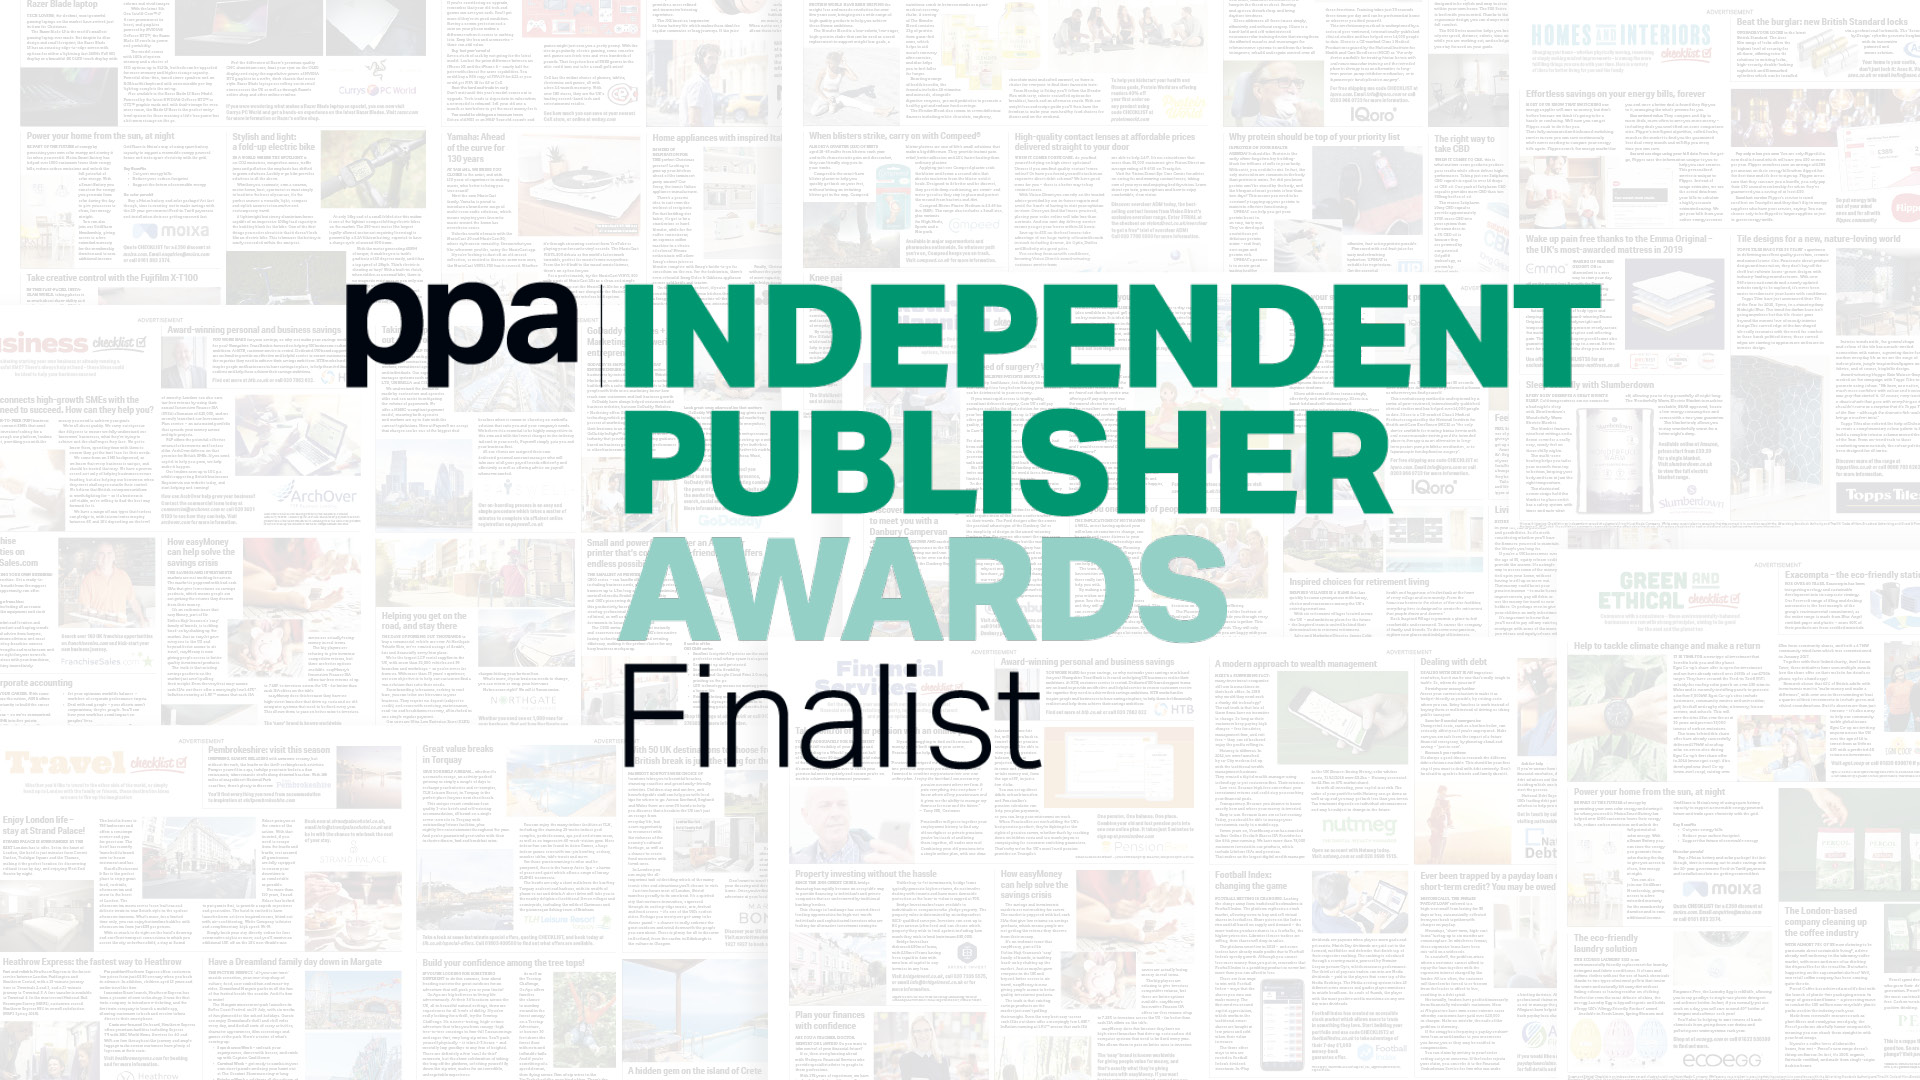 Finalists in Independent Publisher Awards 2019